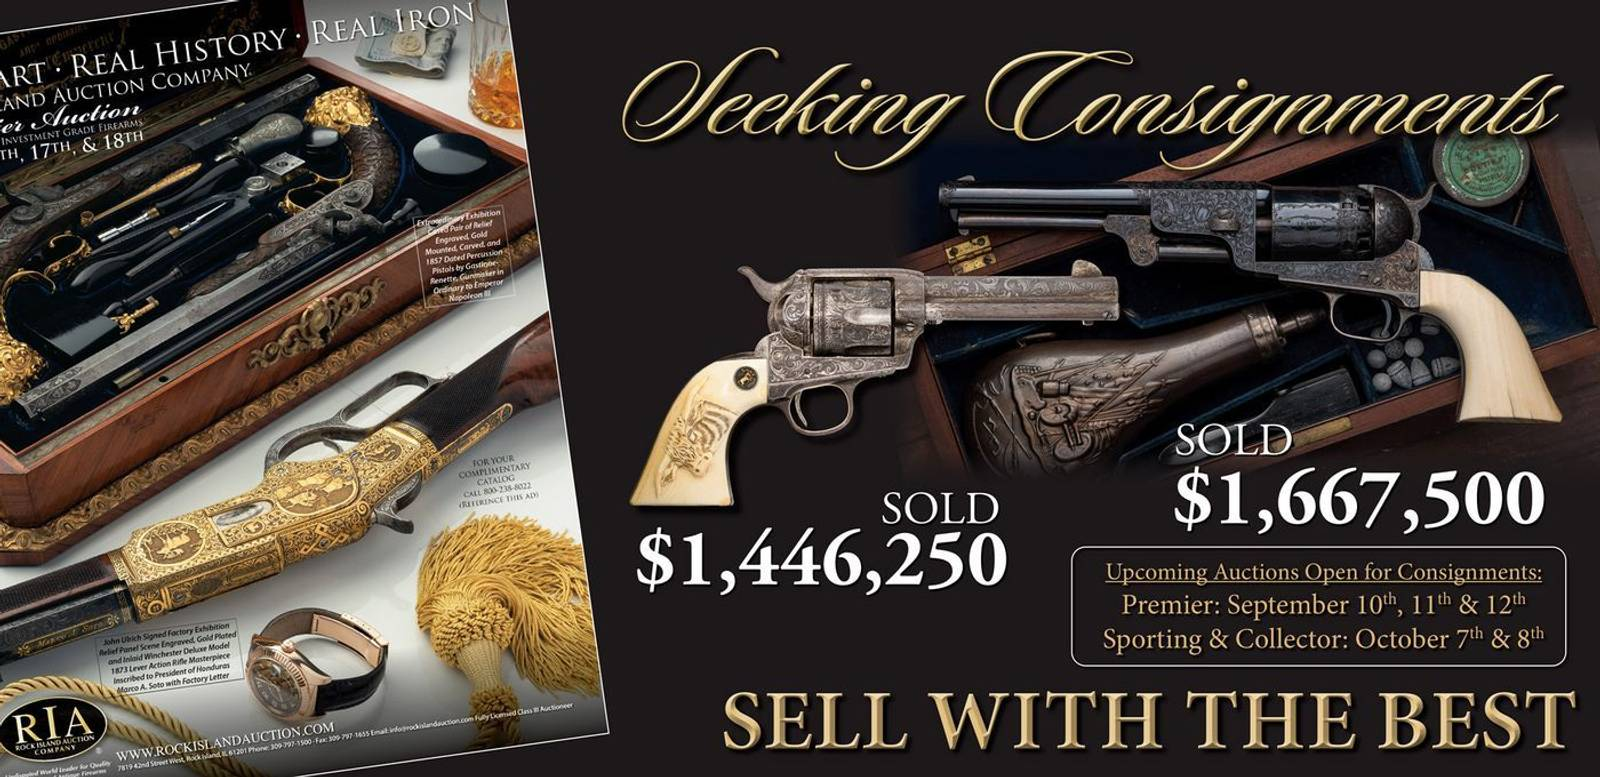 Now Inviting Consignments